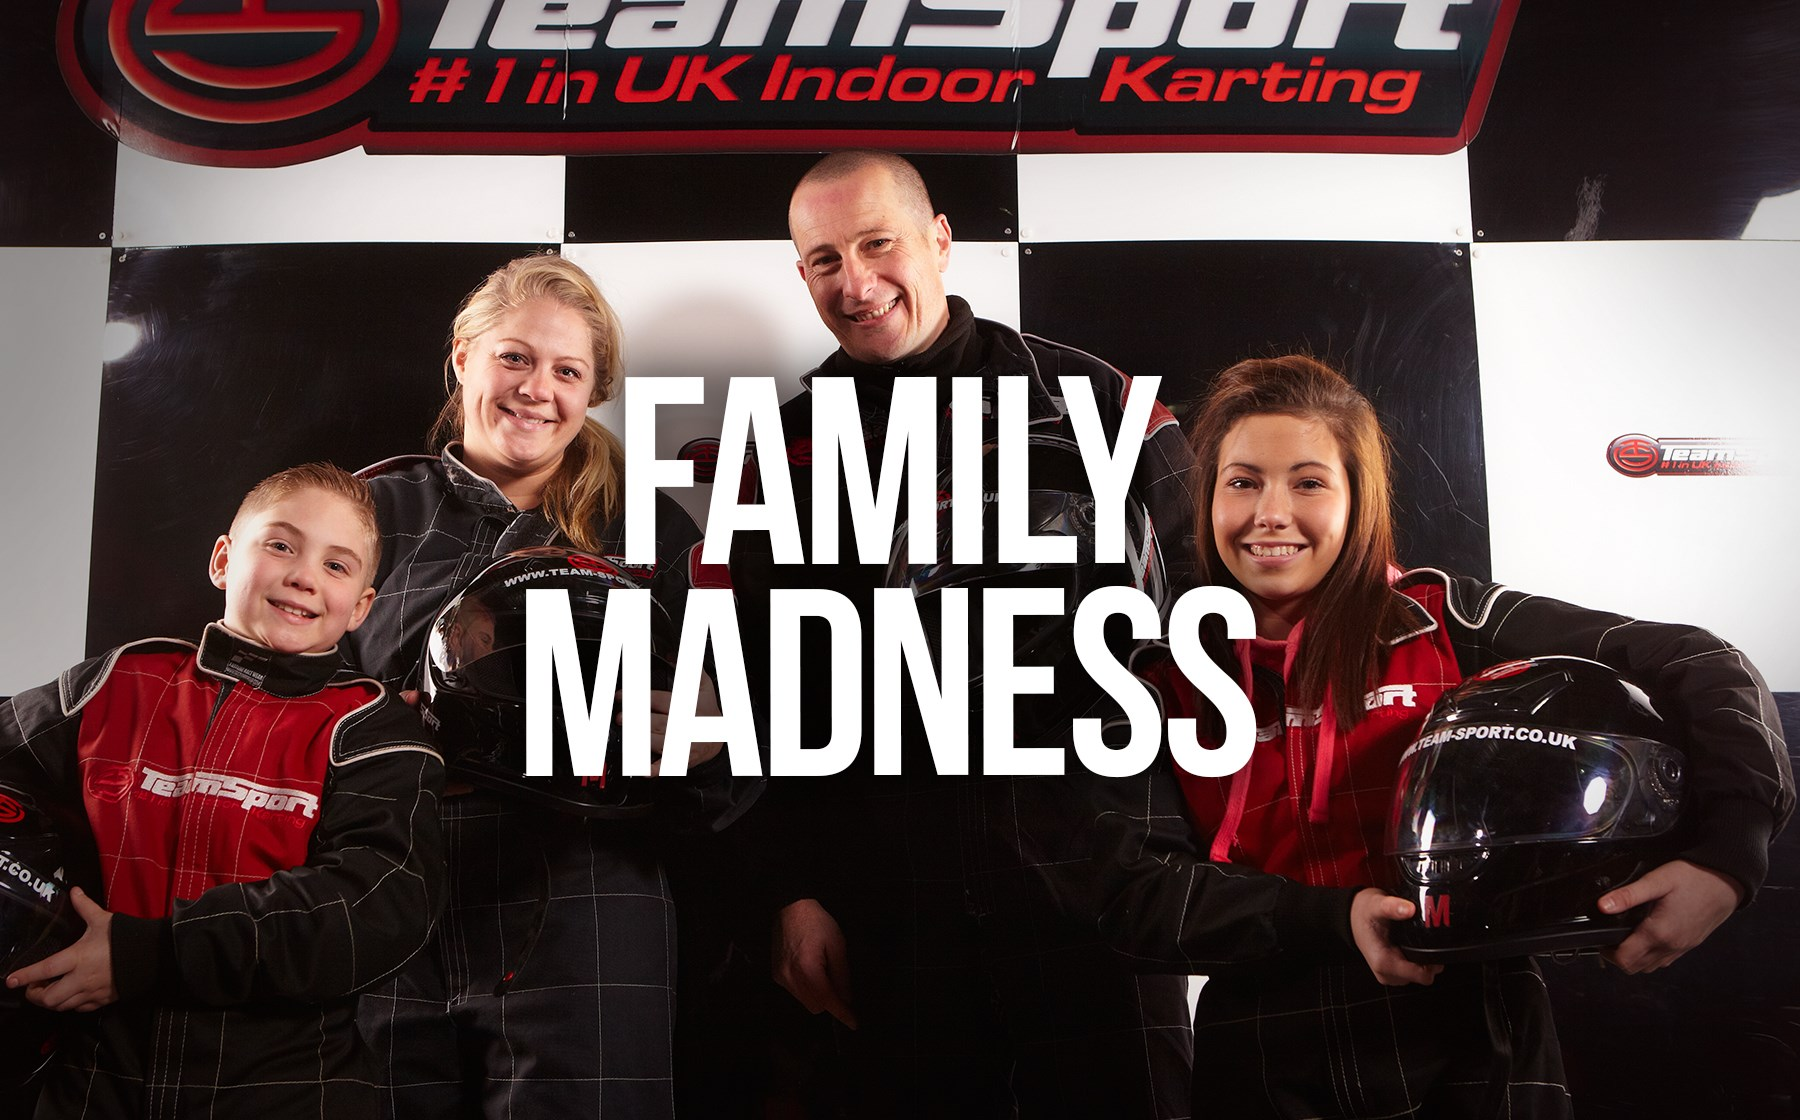 Family Go Karting - Family Madness